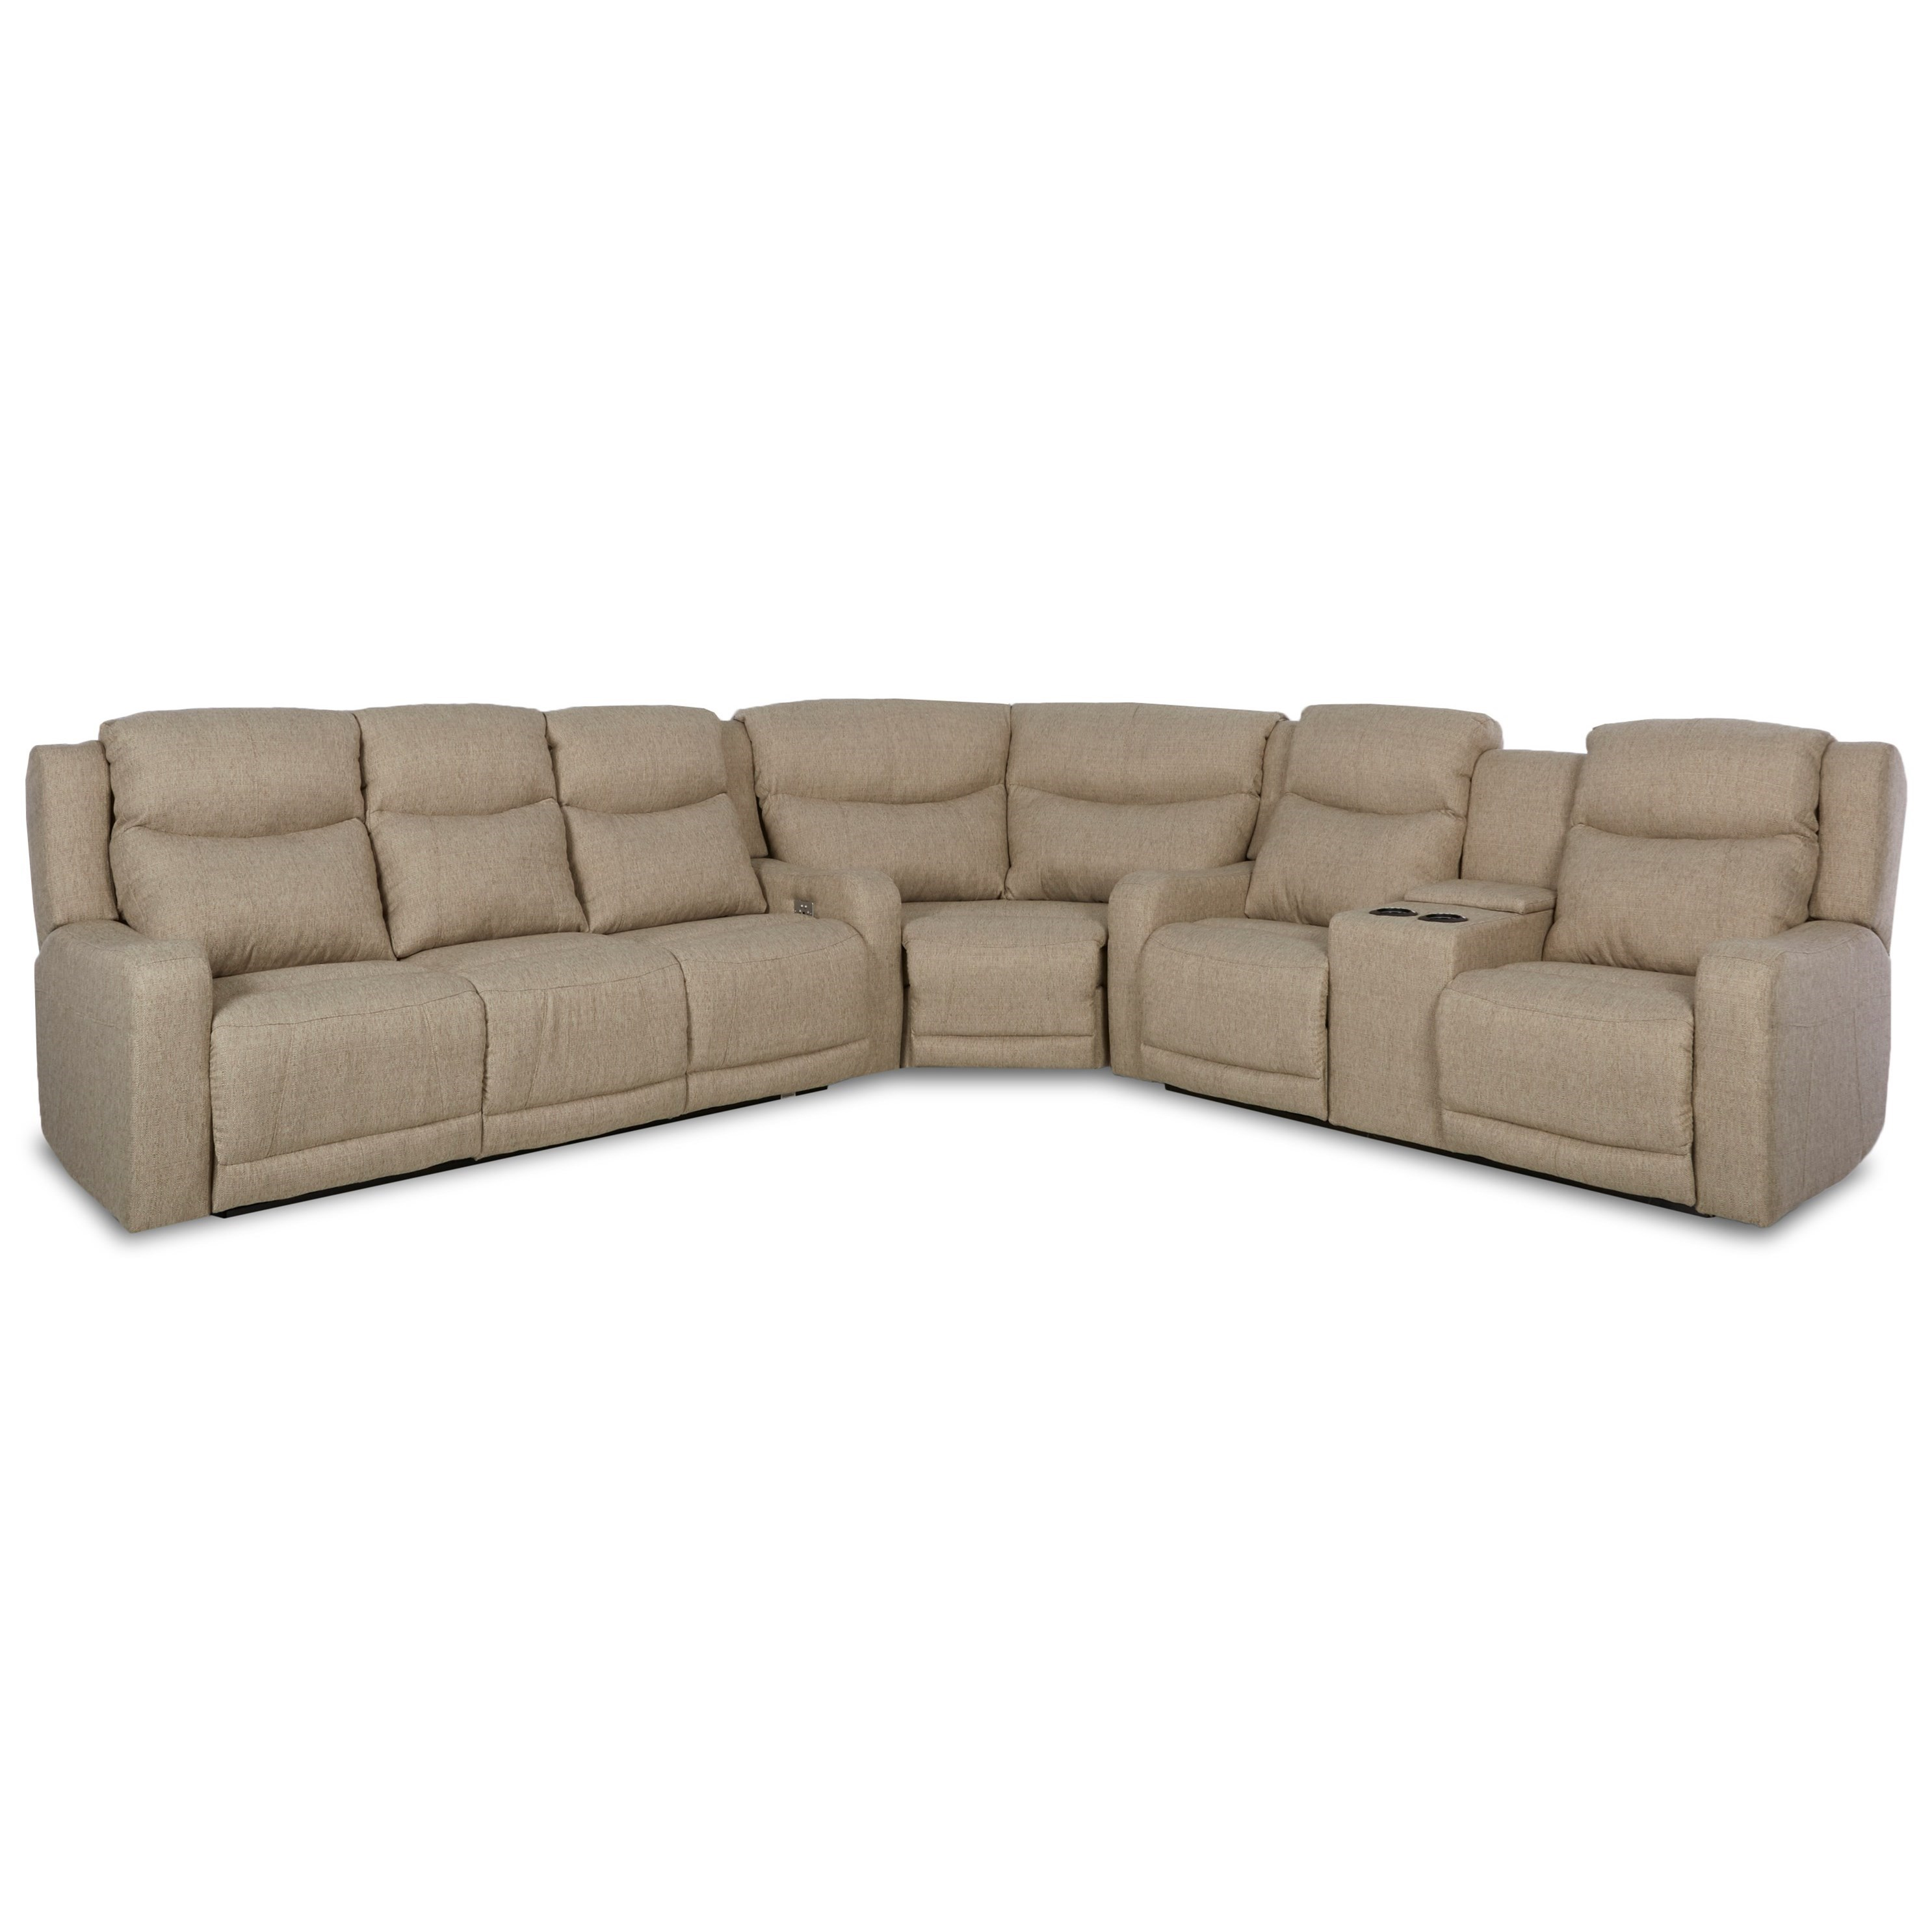 Three Pc Power Reclining Sectional Sofa with Adjustable Headrest